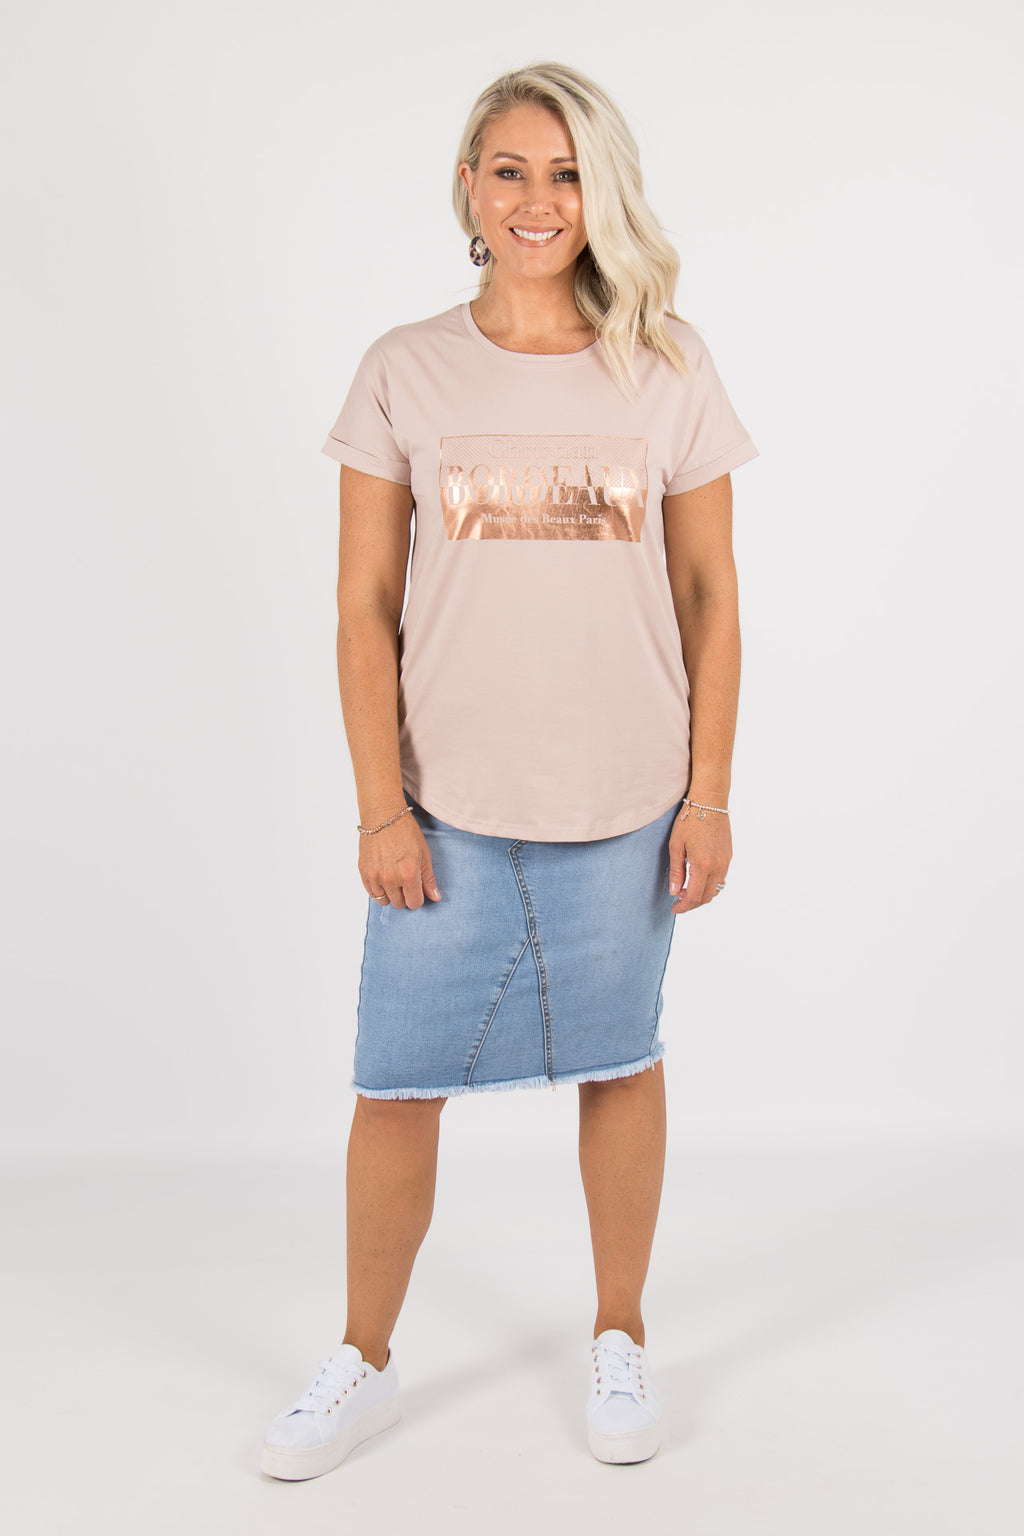 Bordeaux Tee in Mushroom/Rose Gold